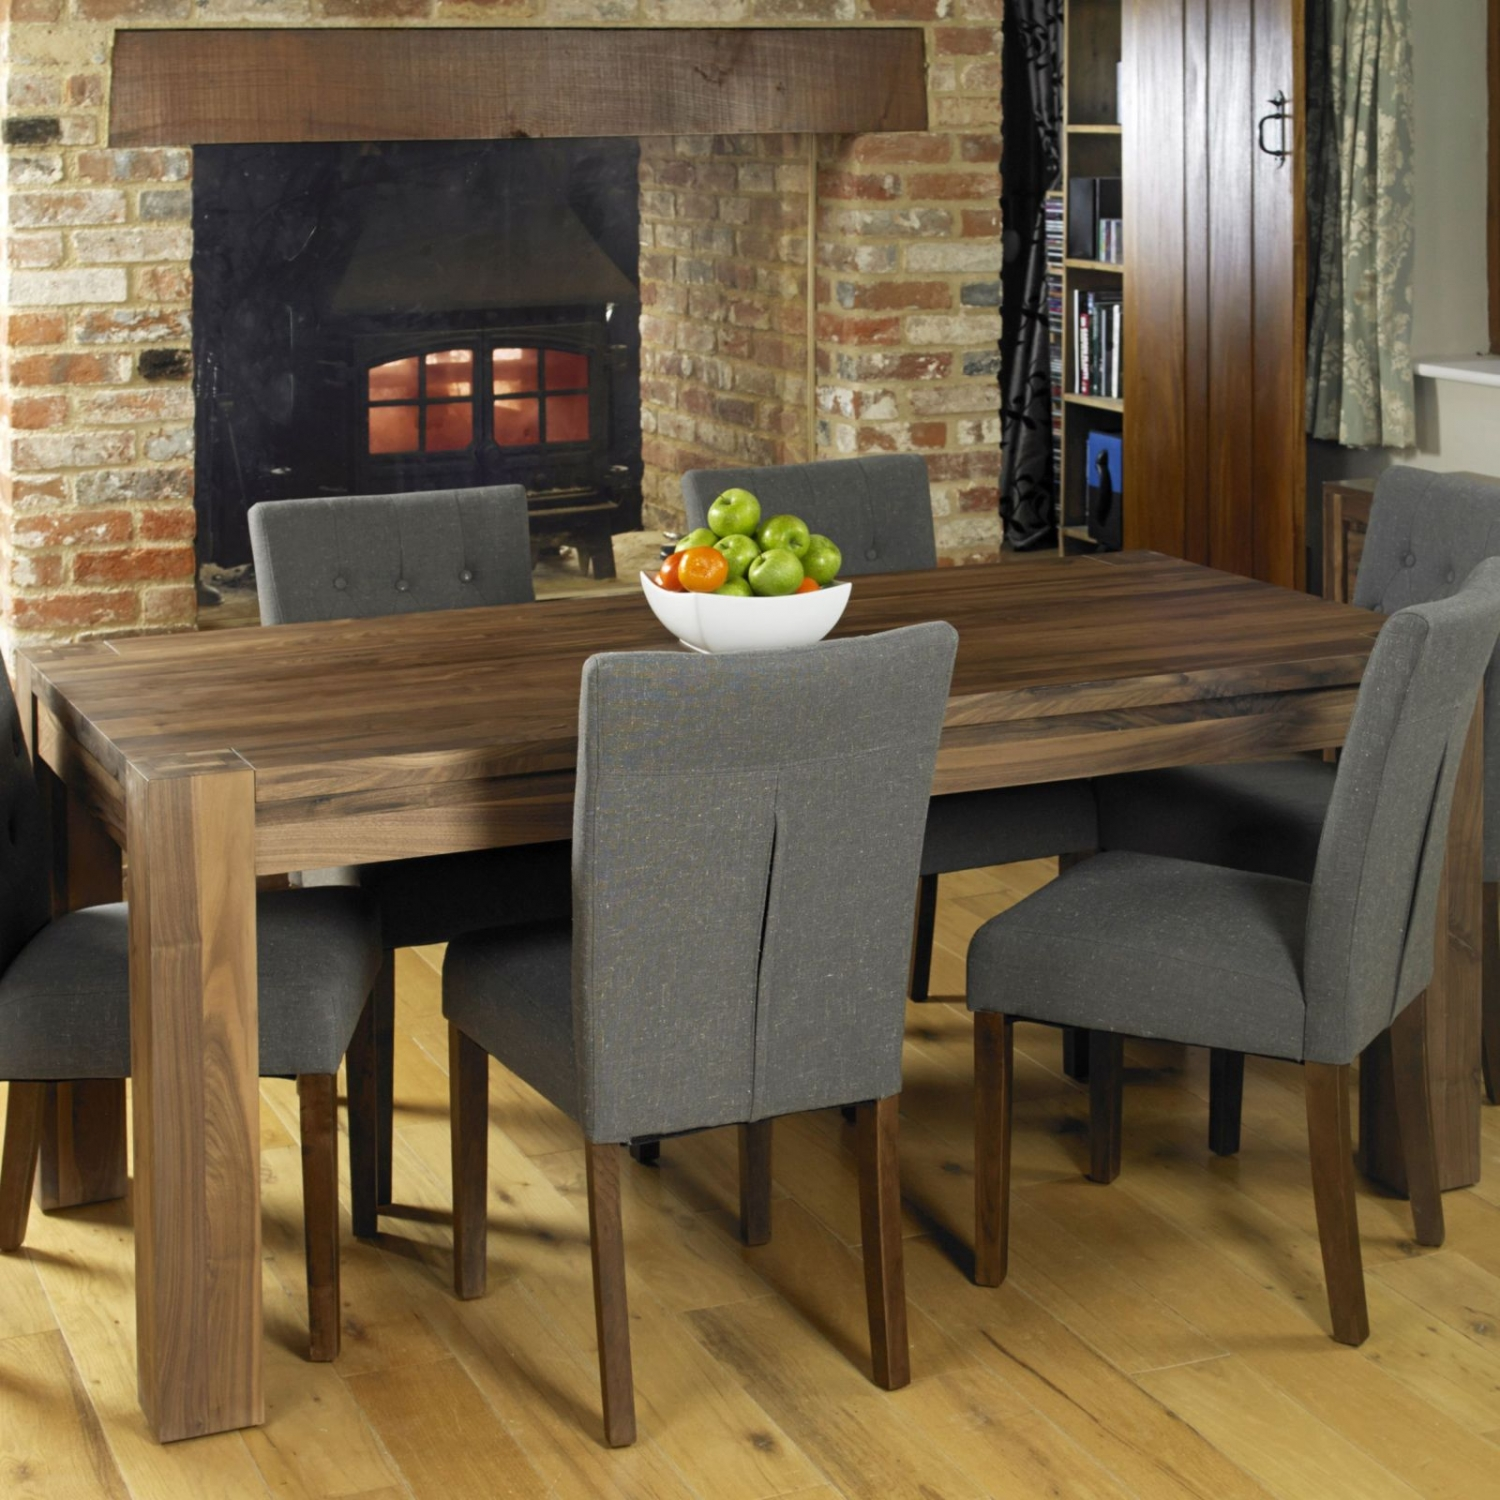 Strathmore solid walnut home dining room furniture six for 6 seater dining room table